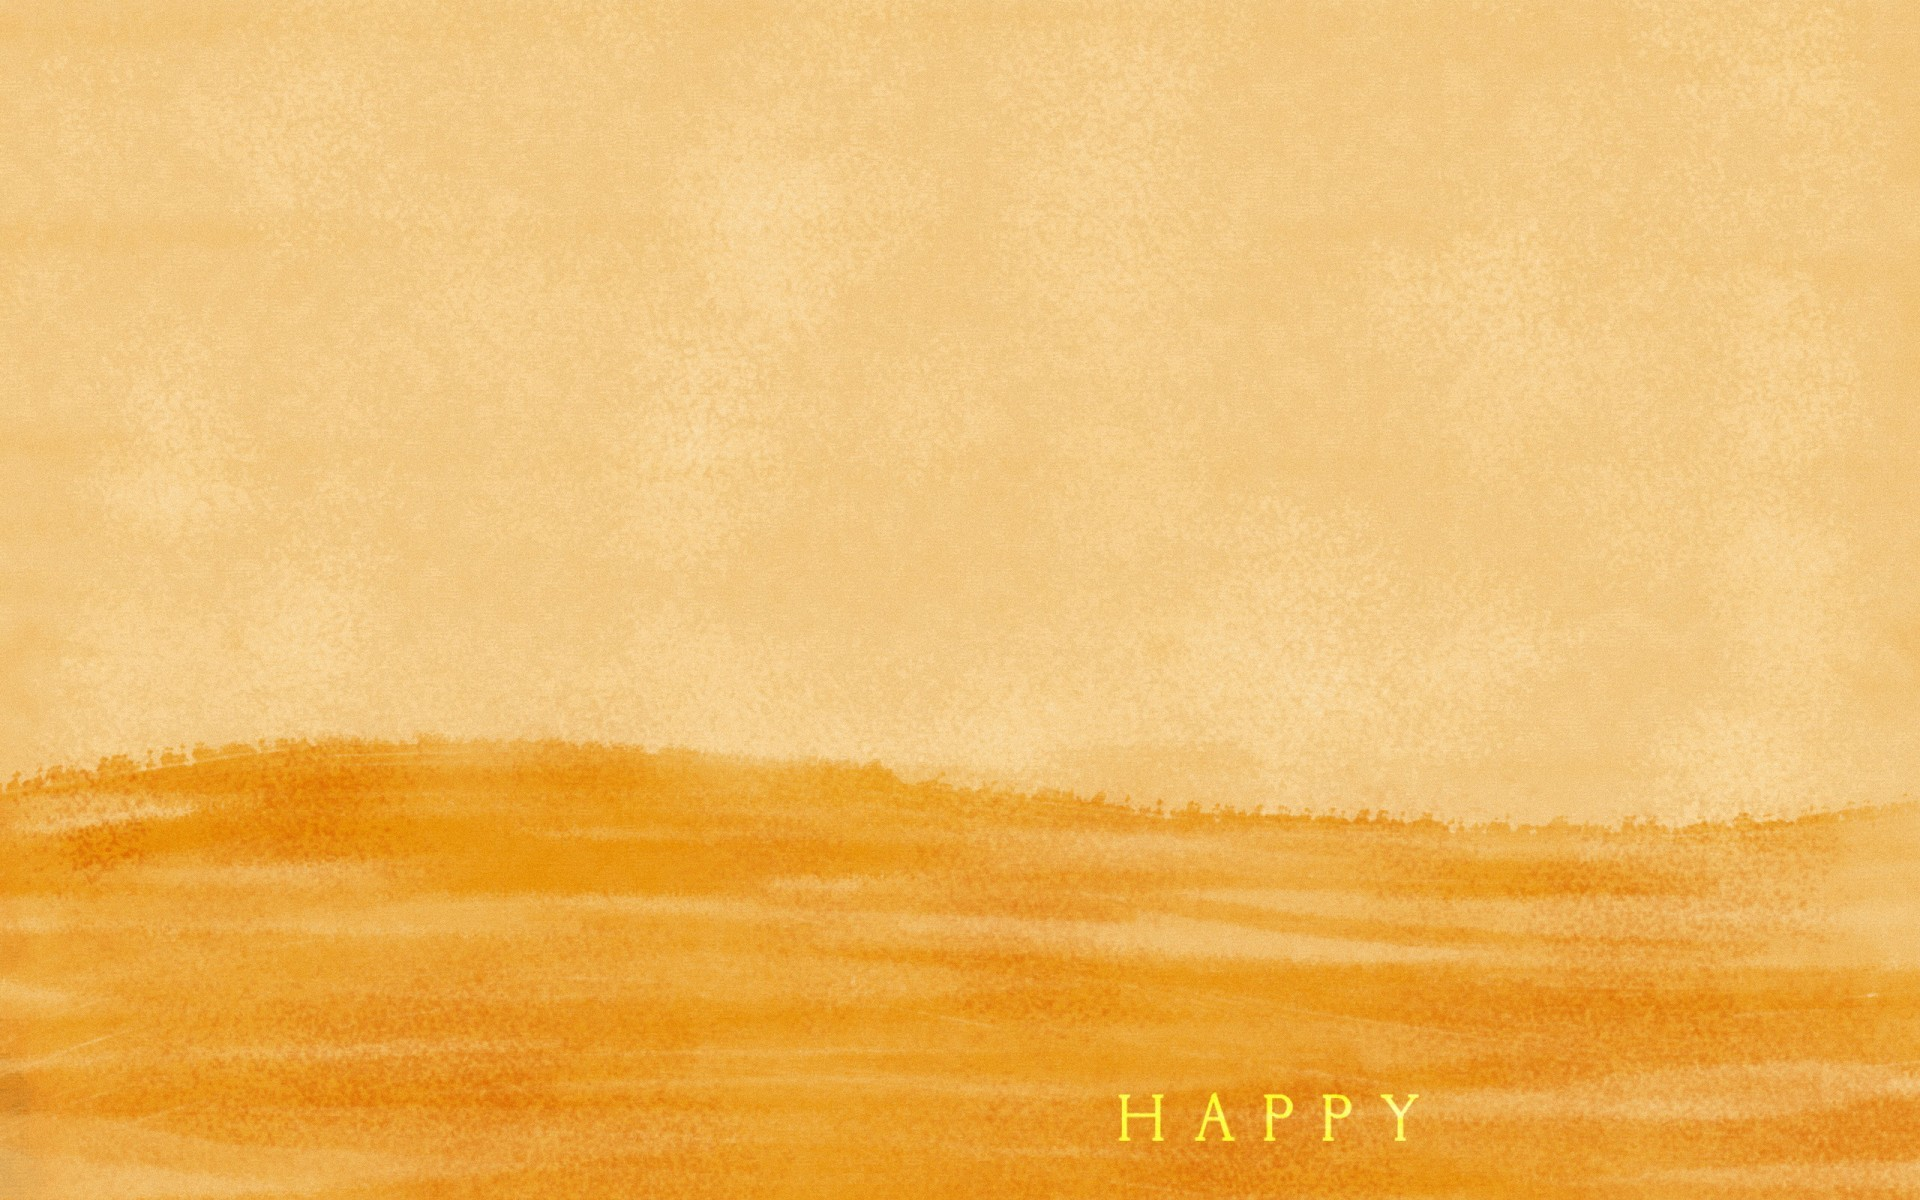 1920x1200 Wallpaper, Abstract, Happy, Brown, Light